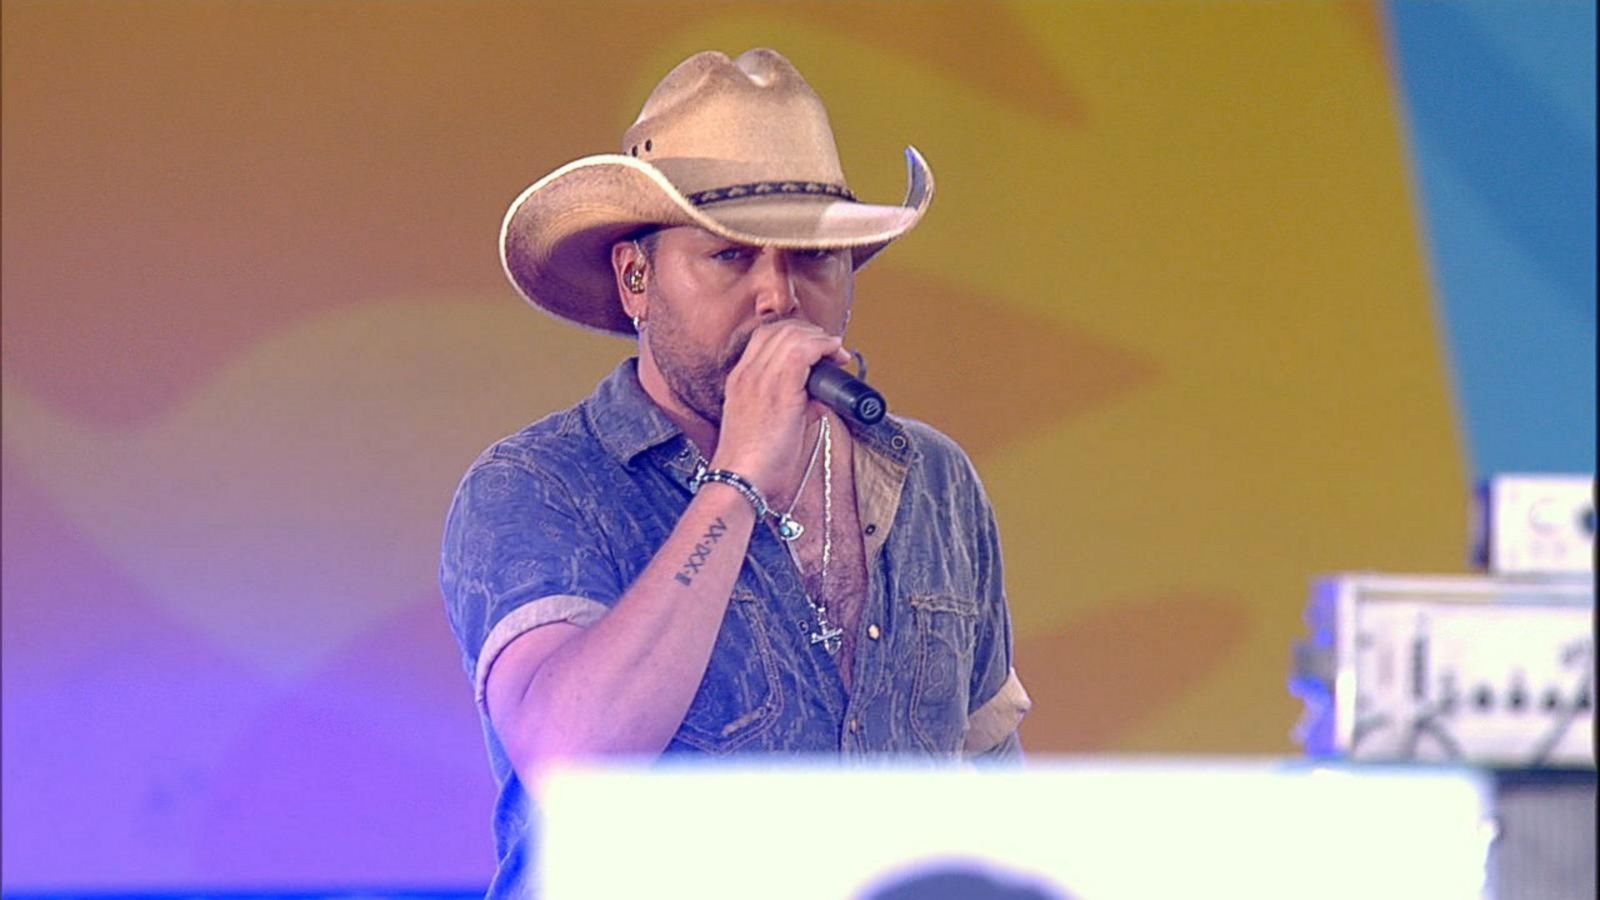 VIDEO: Jason Aldean Sings 'Lights Come On' on 'GMA'